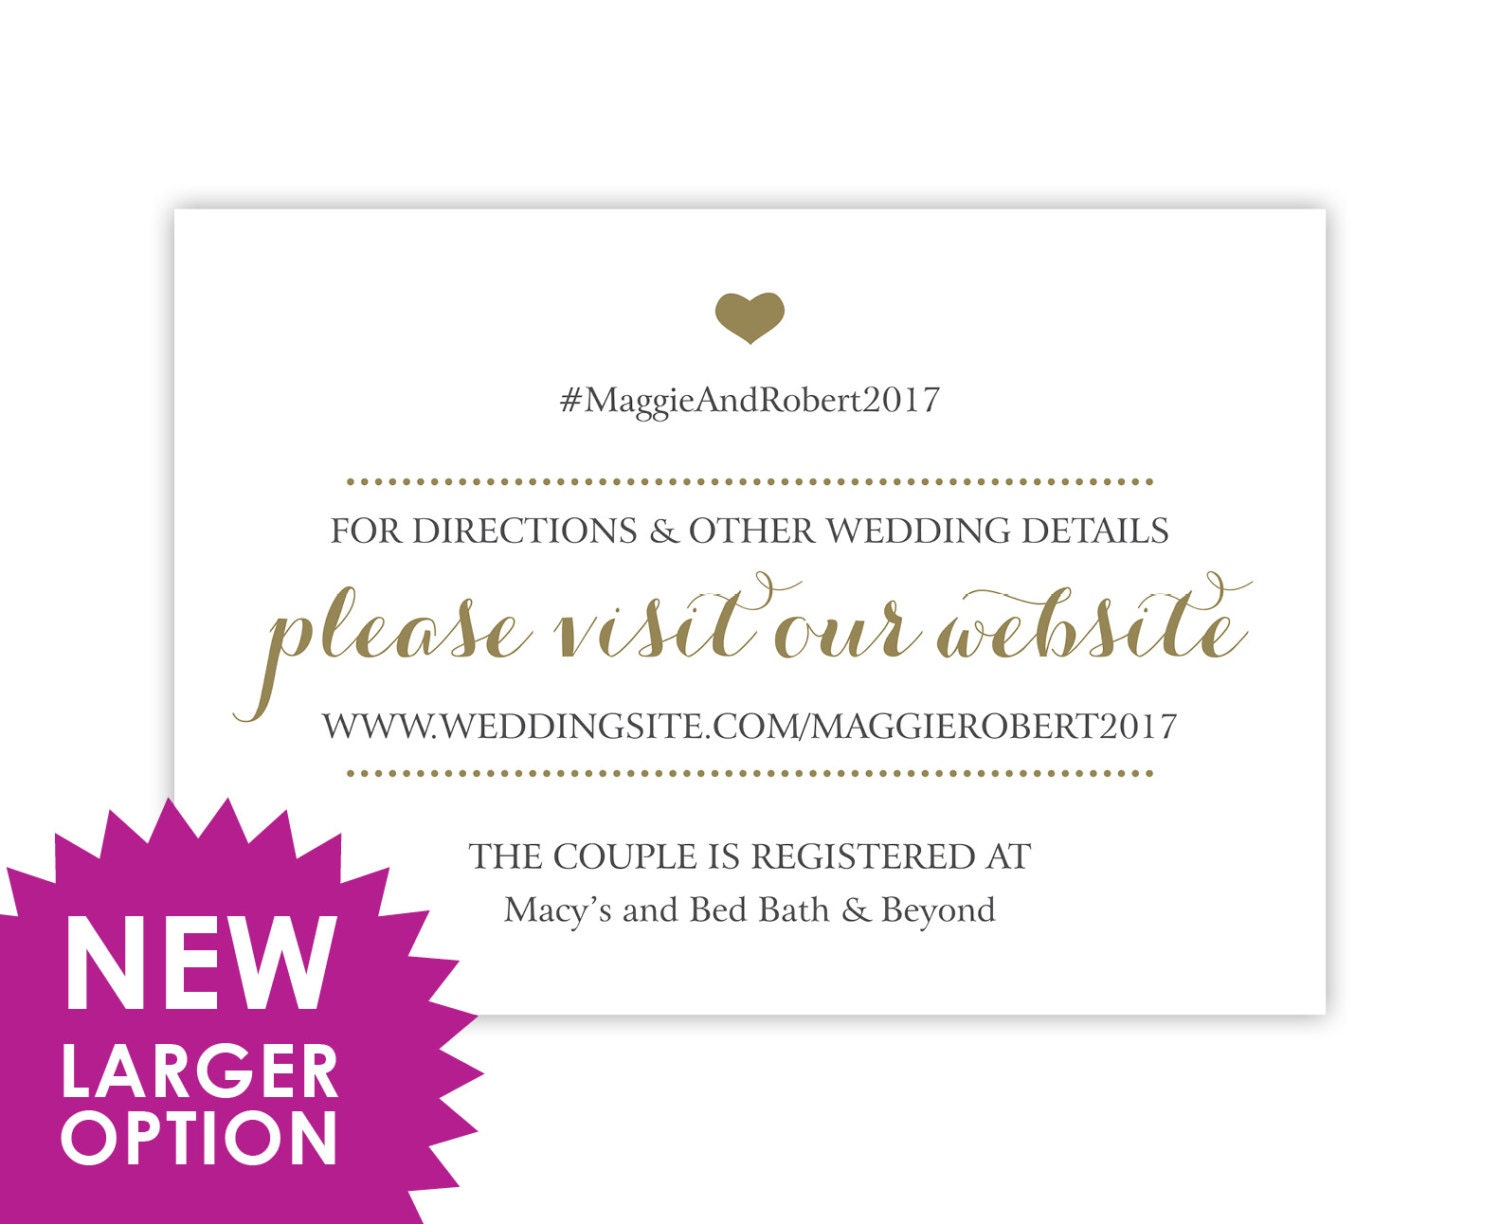 wedding registry cards enclosure cards wedding website cards or hashtag cards printed white with gold heart 20 pieces per order - Wedding Registry Cards